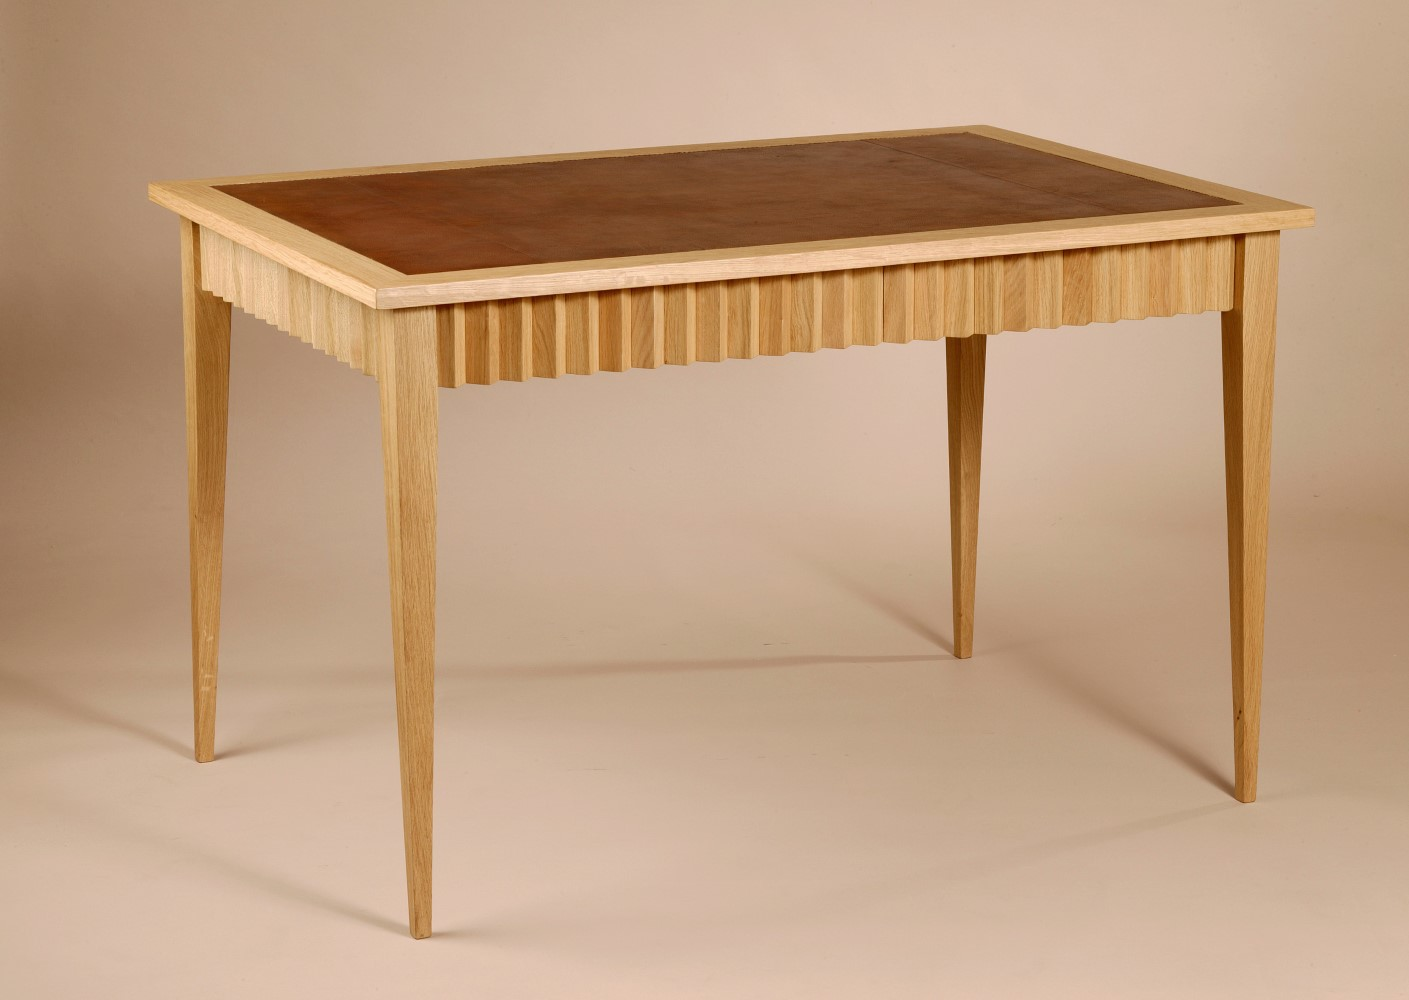 corinthe desk solid oak wood and stretched leather